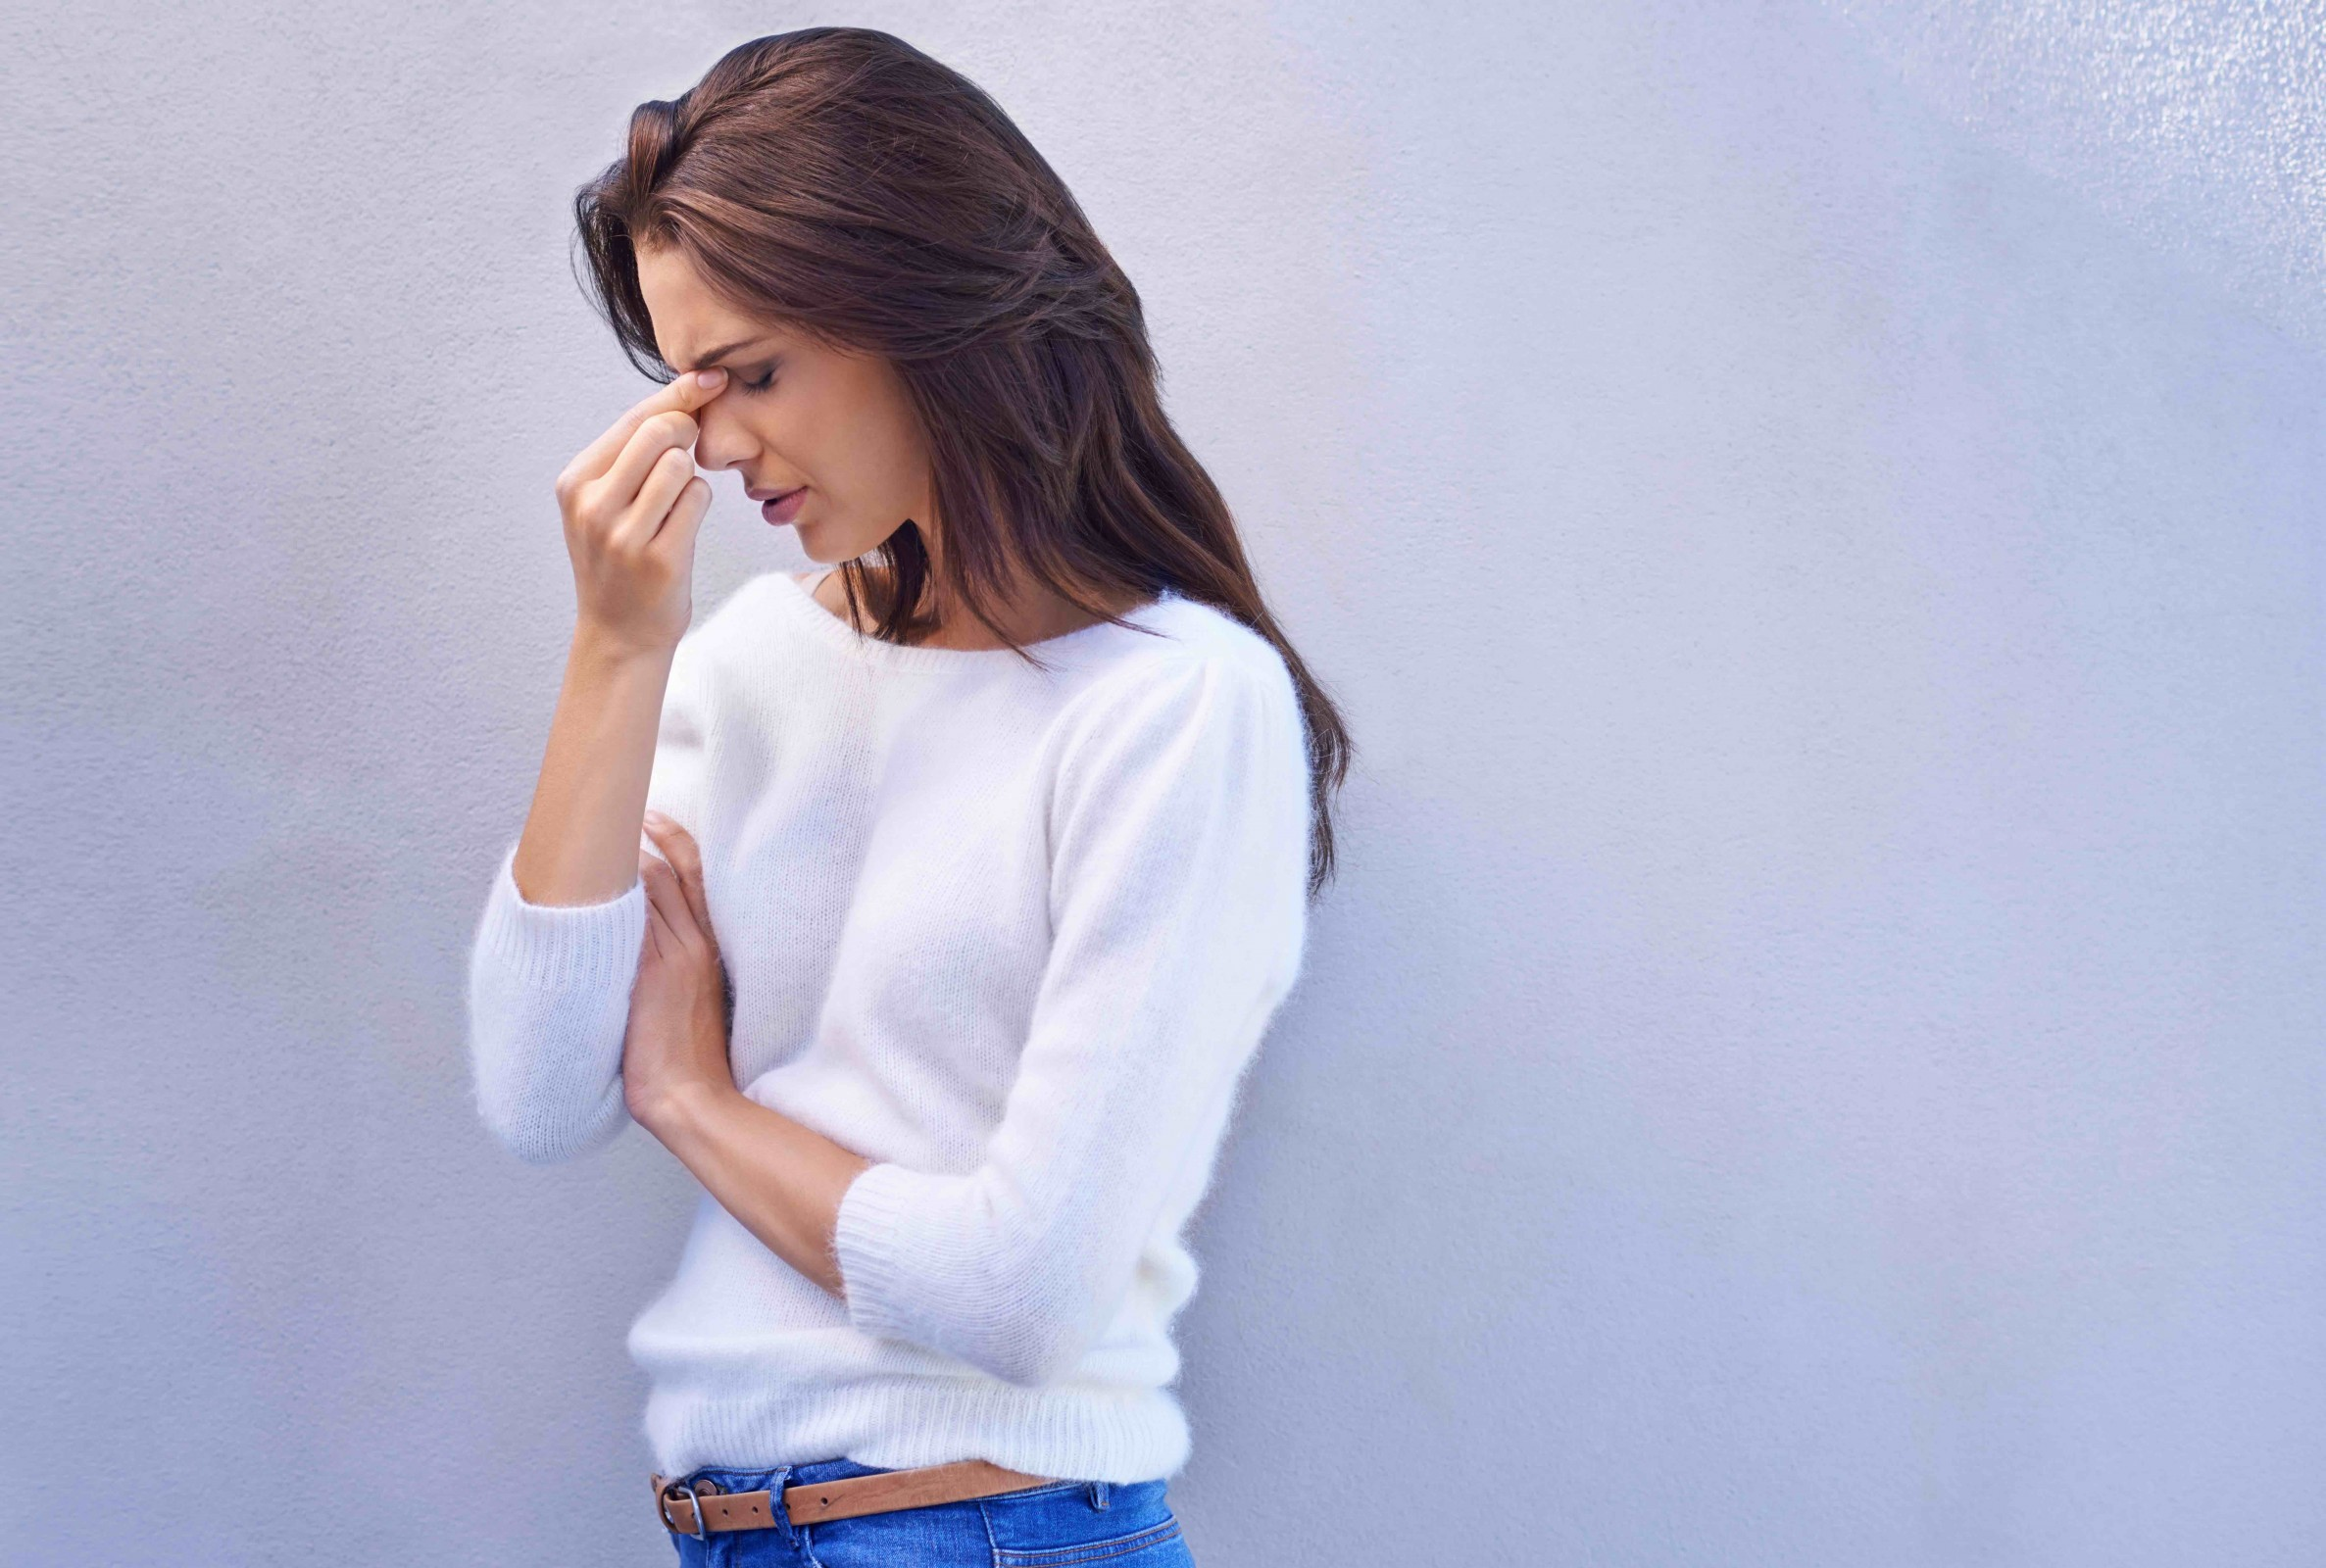 Five Ways to Reduce Stress with Dr. Pat Farrell